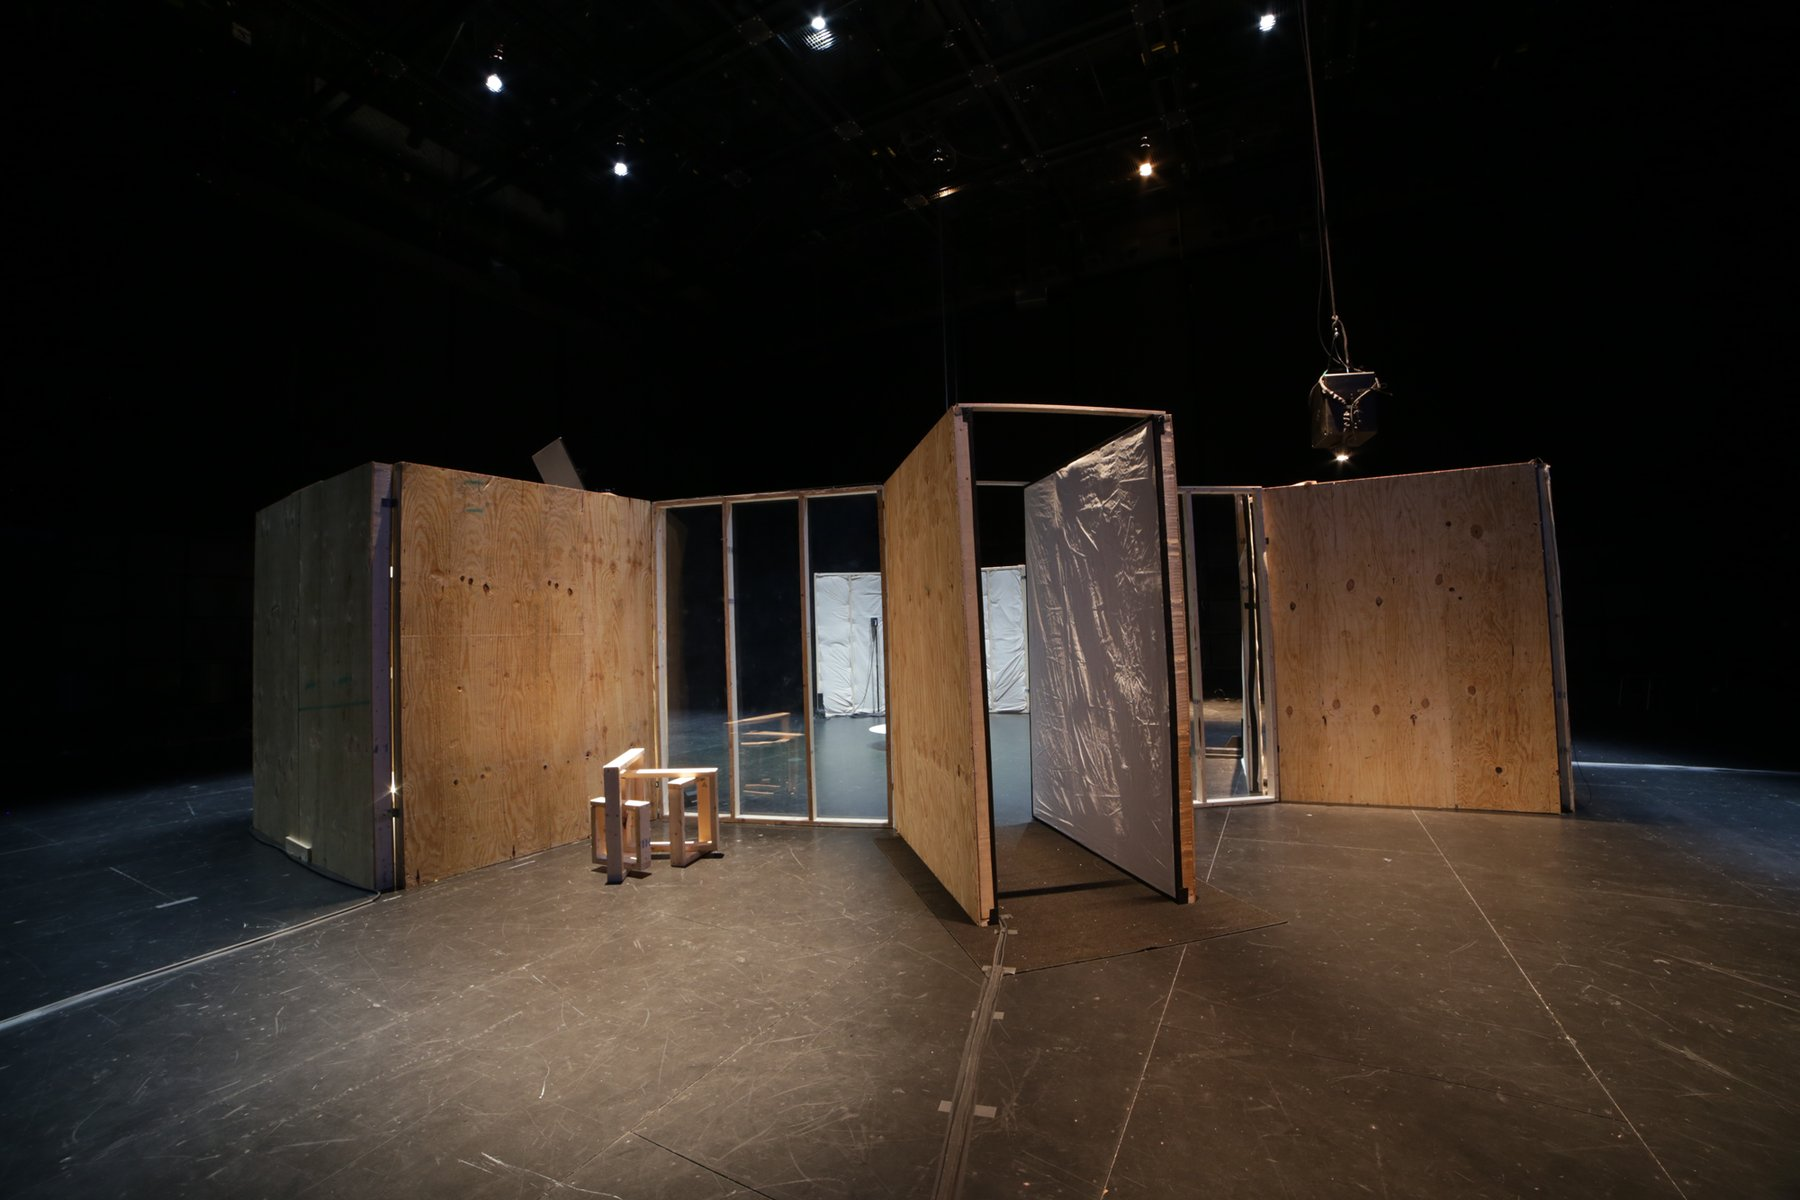 A dark room with rectangular wooden structures installed, Gordon Soundtracks